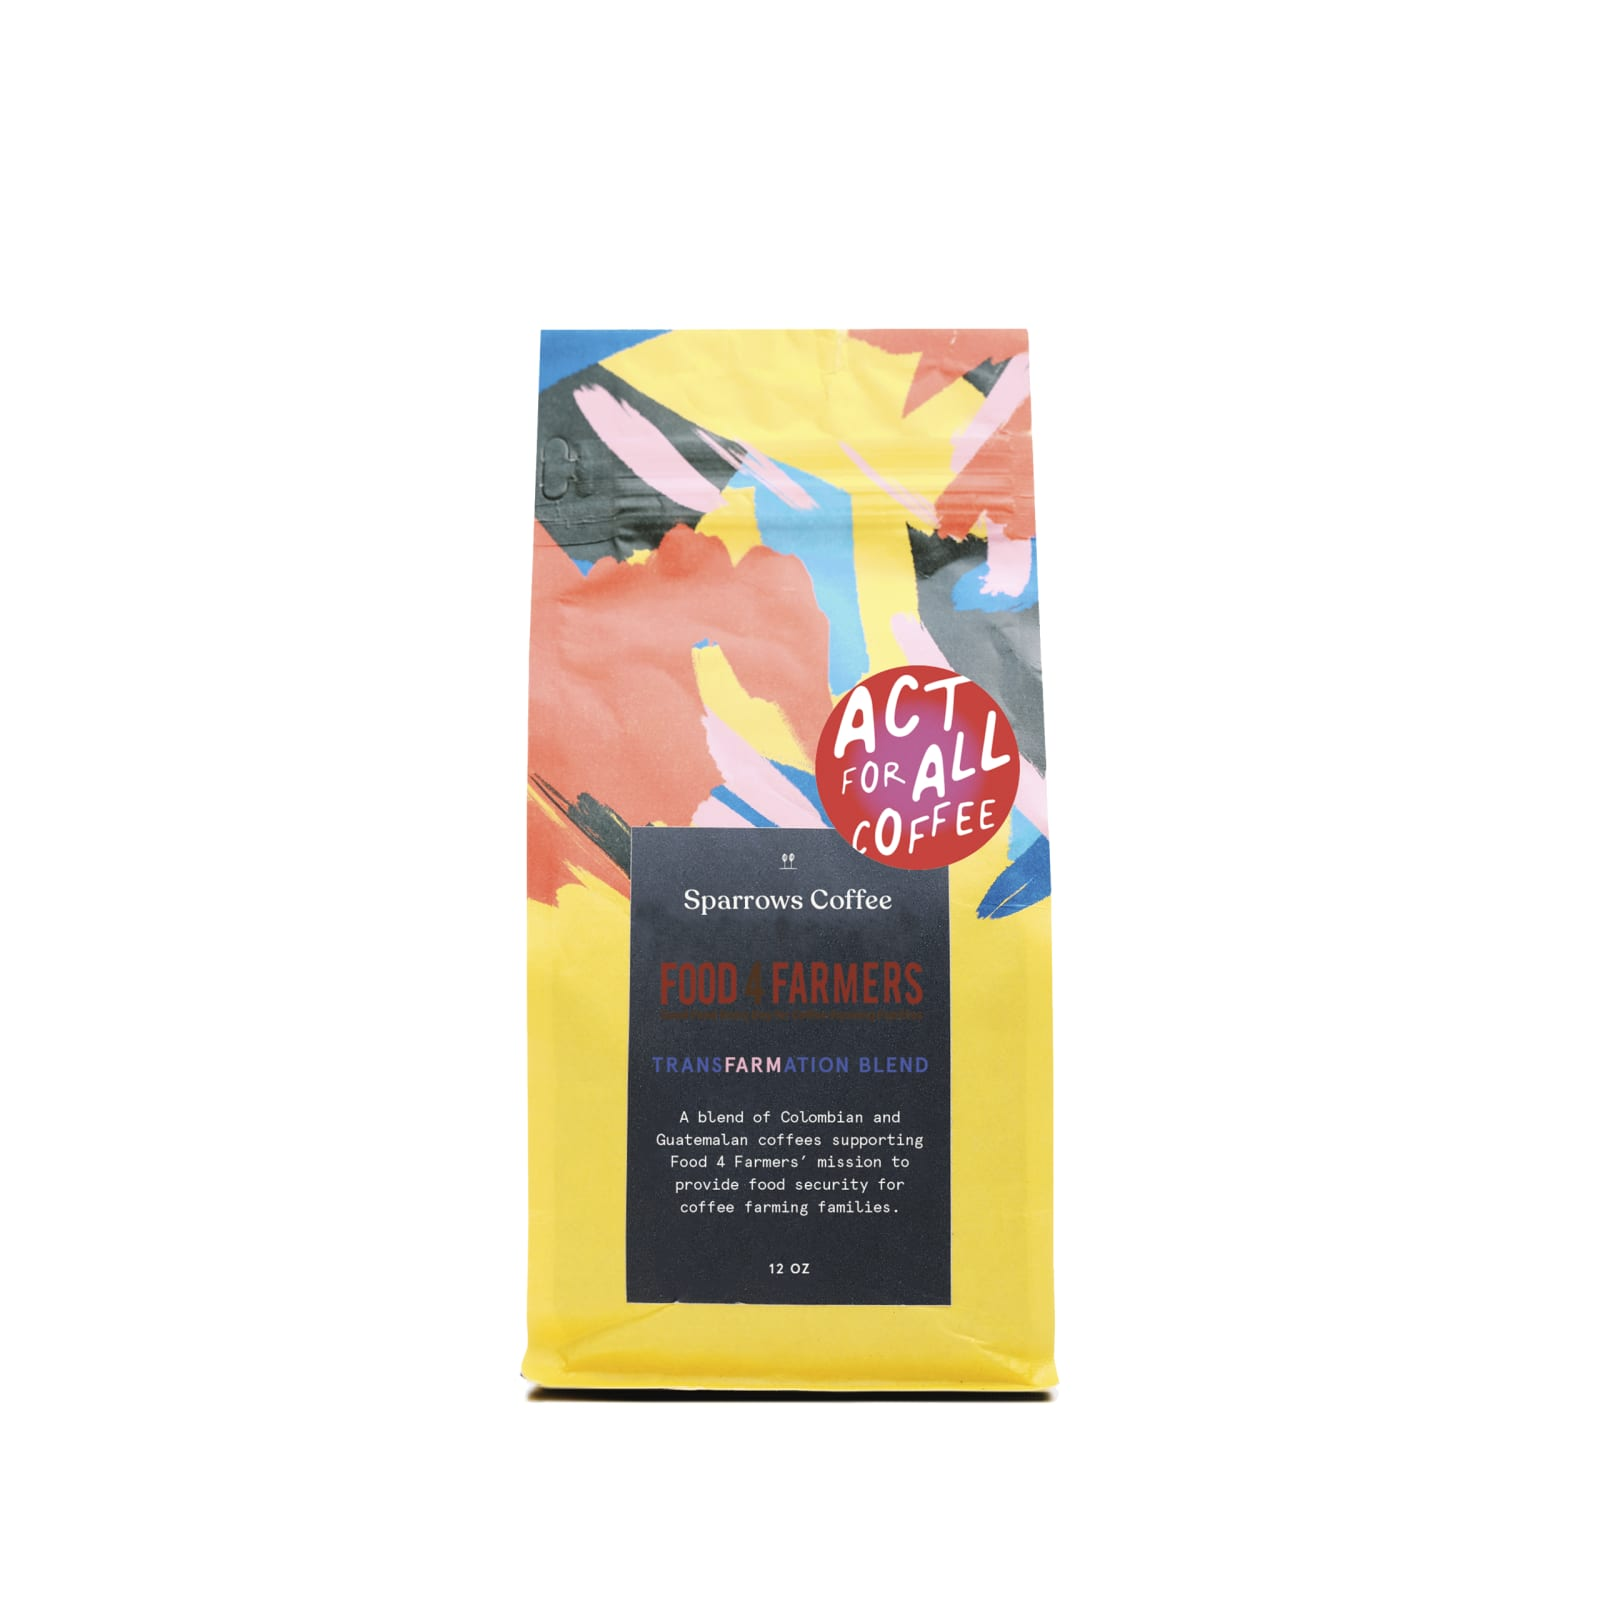 Act for All Coffee: TransFARMation Blend